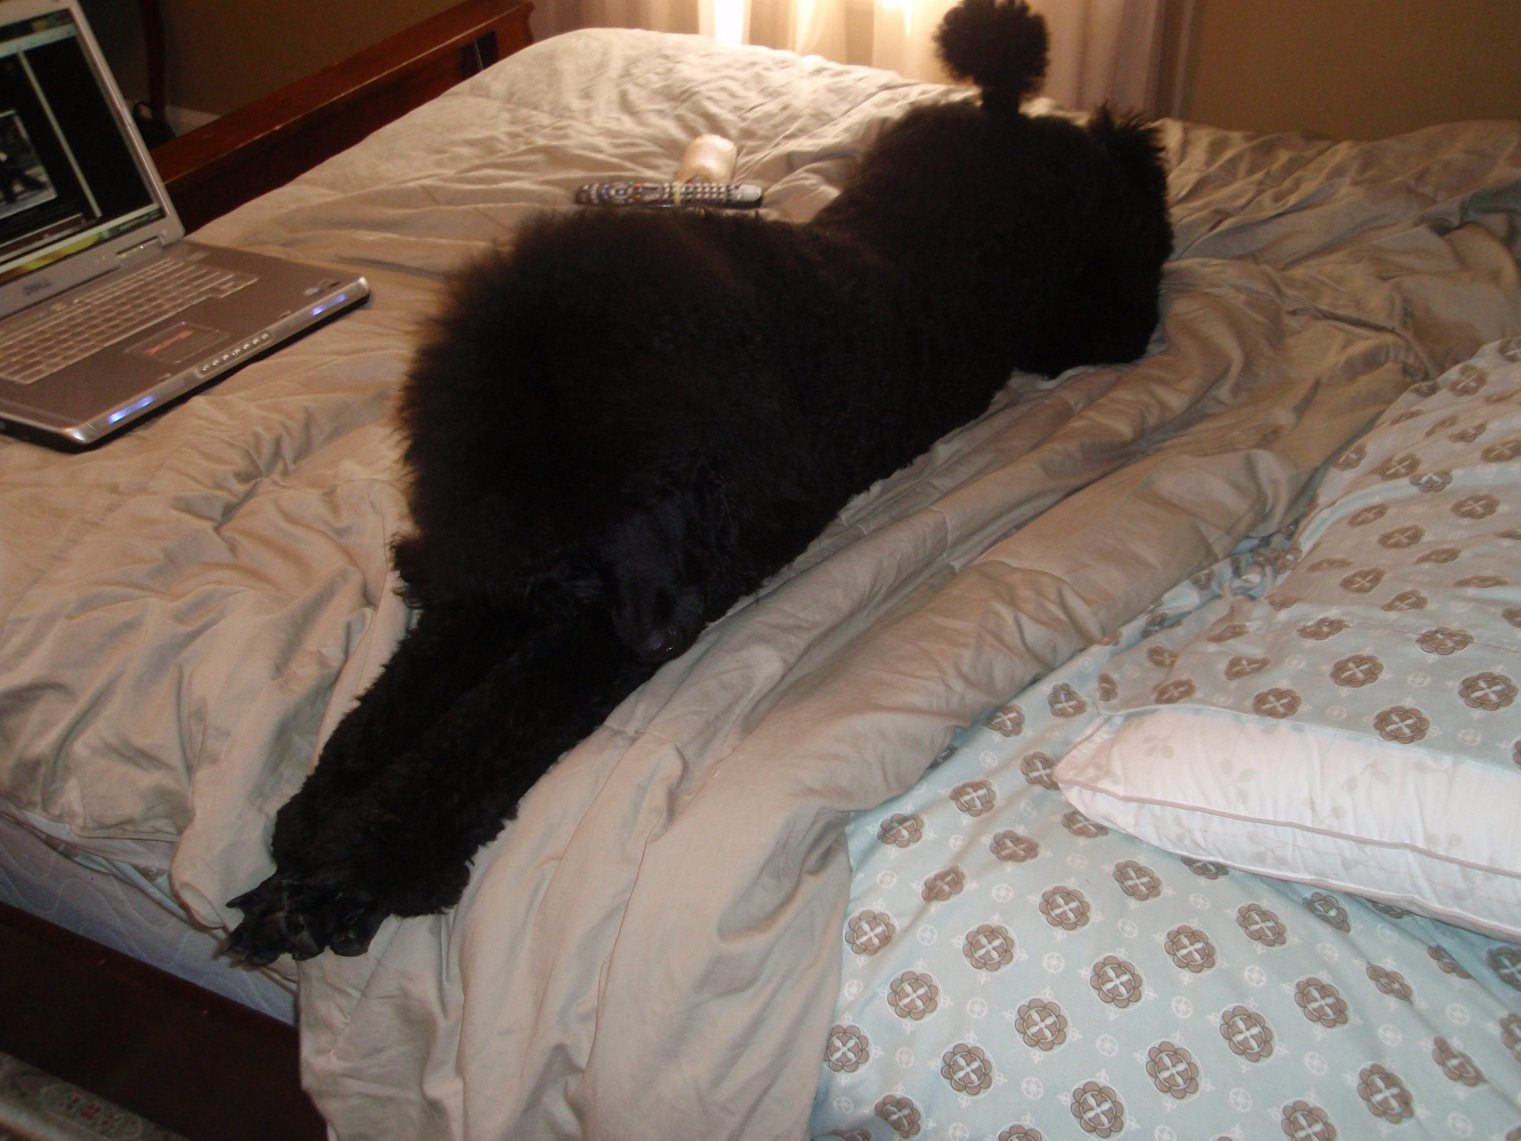 More Pics of Rambo growing up - Poodle Forum - Standard ...